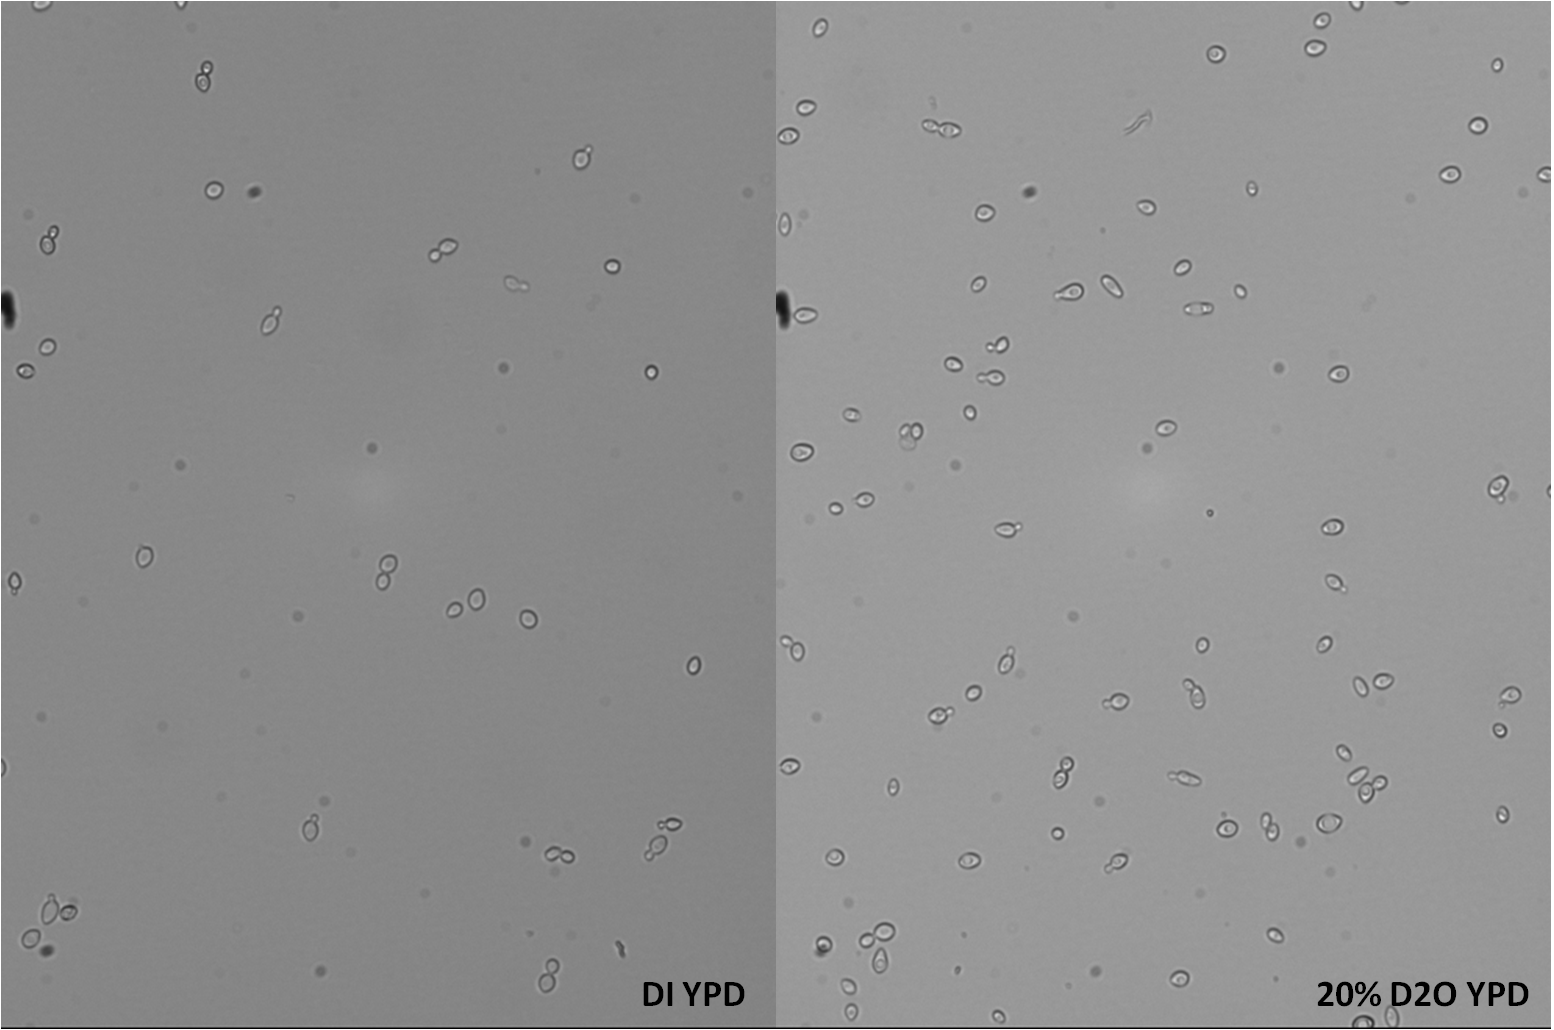 WT yeast compared to yeast grown in 20% D2O YPD from last week.